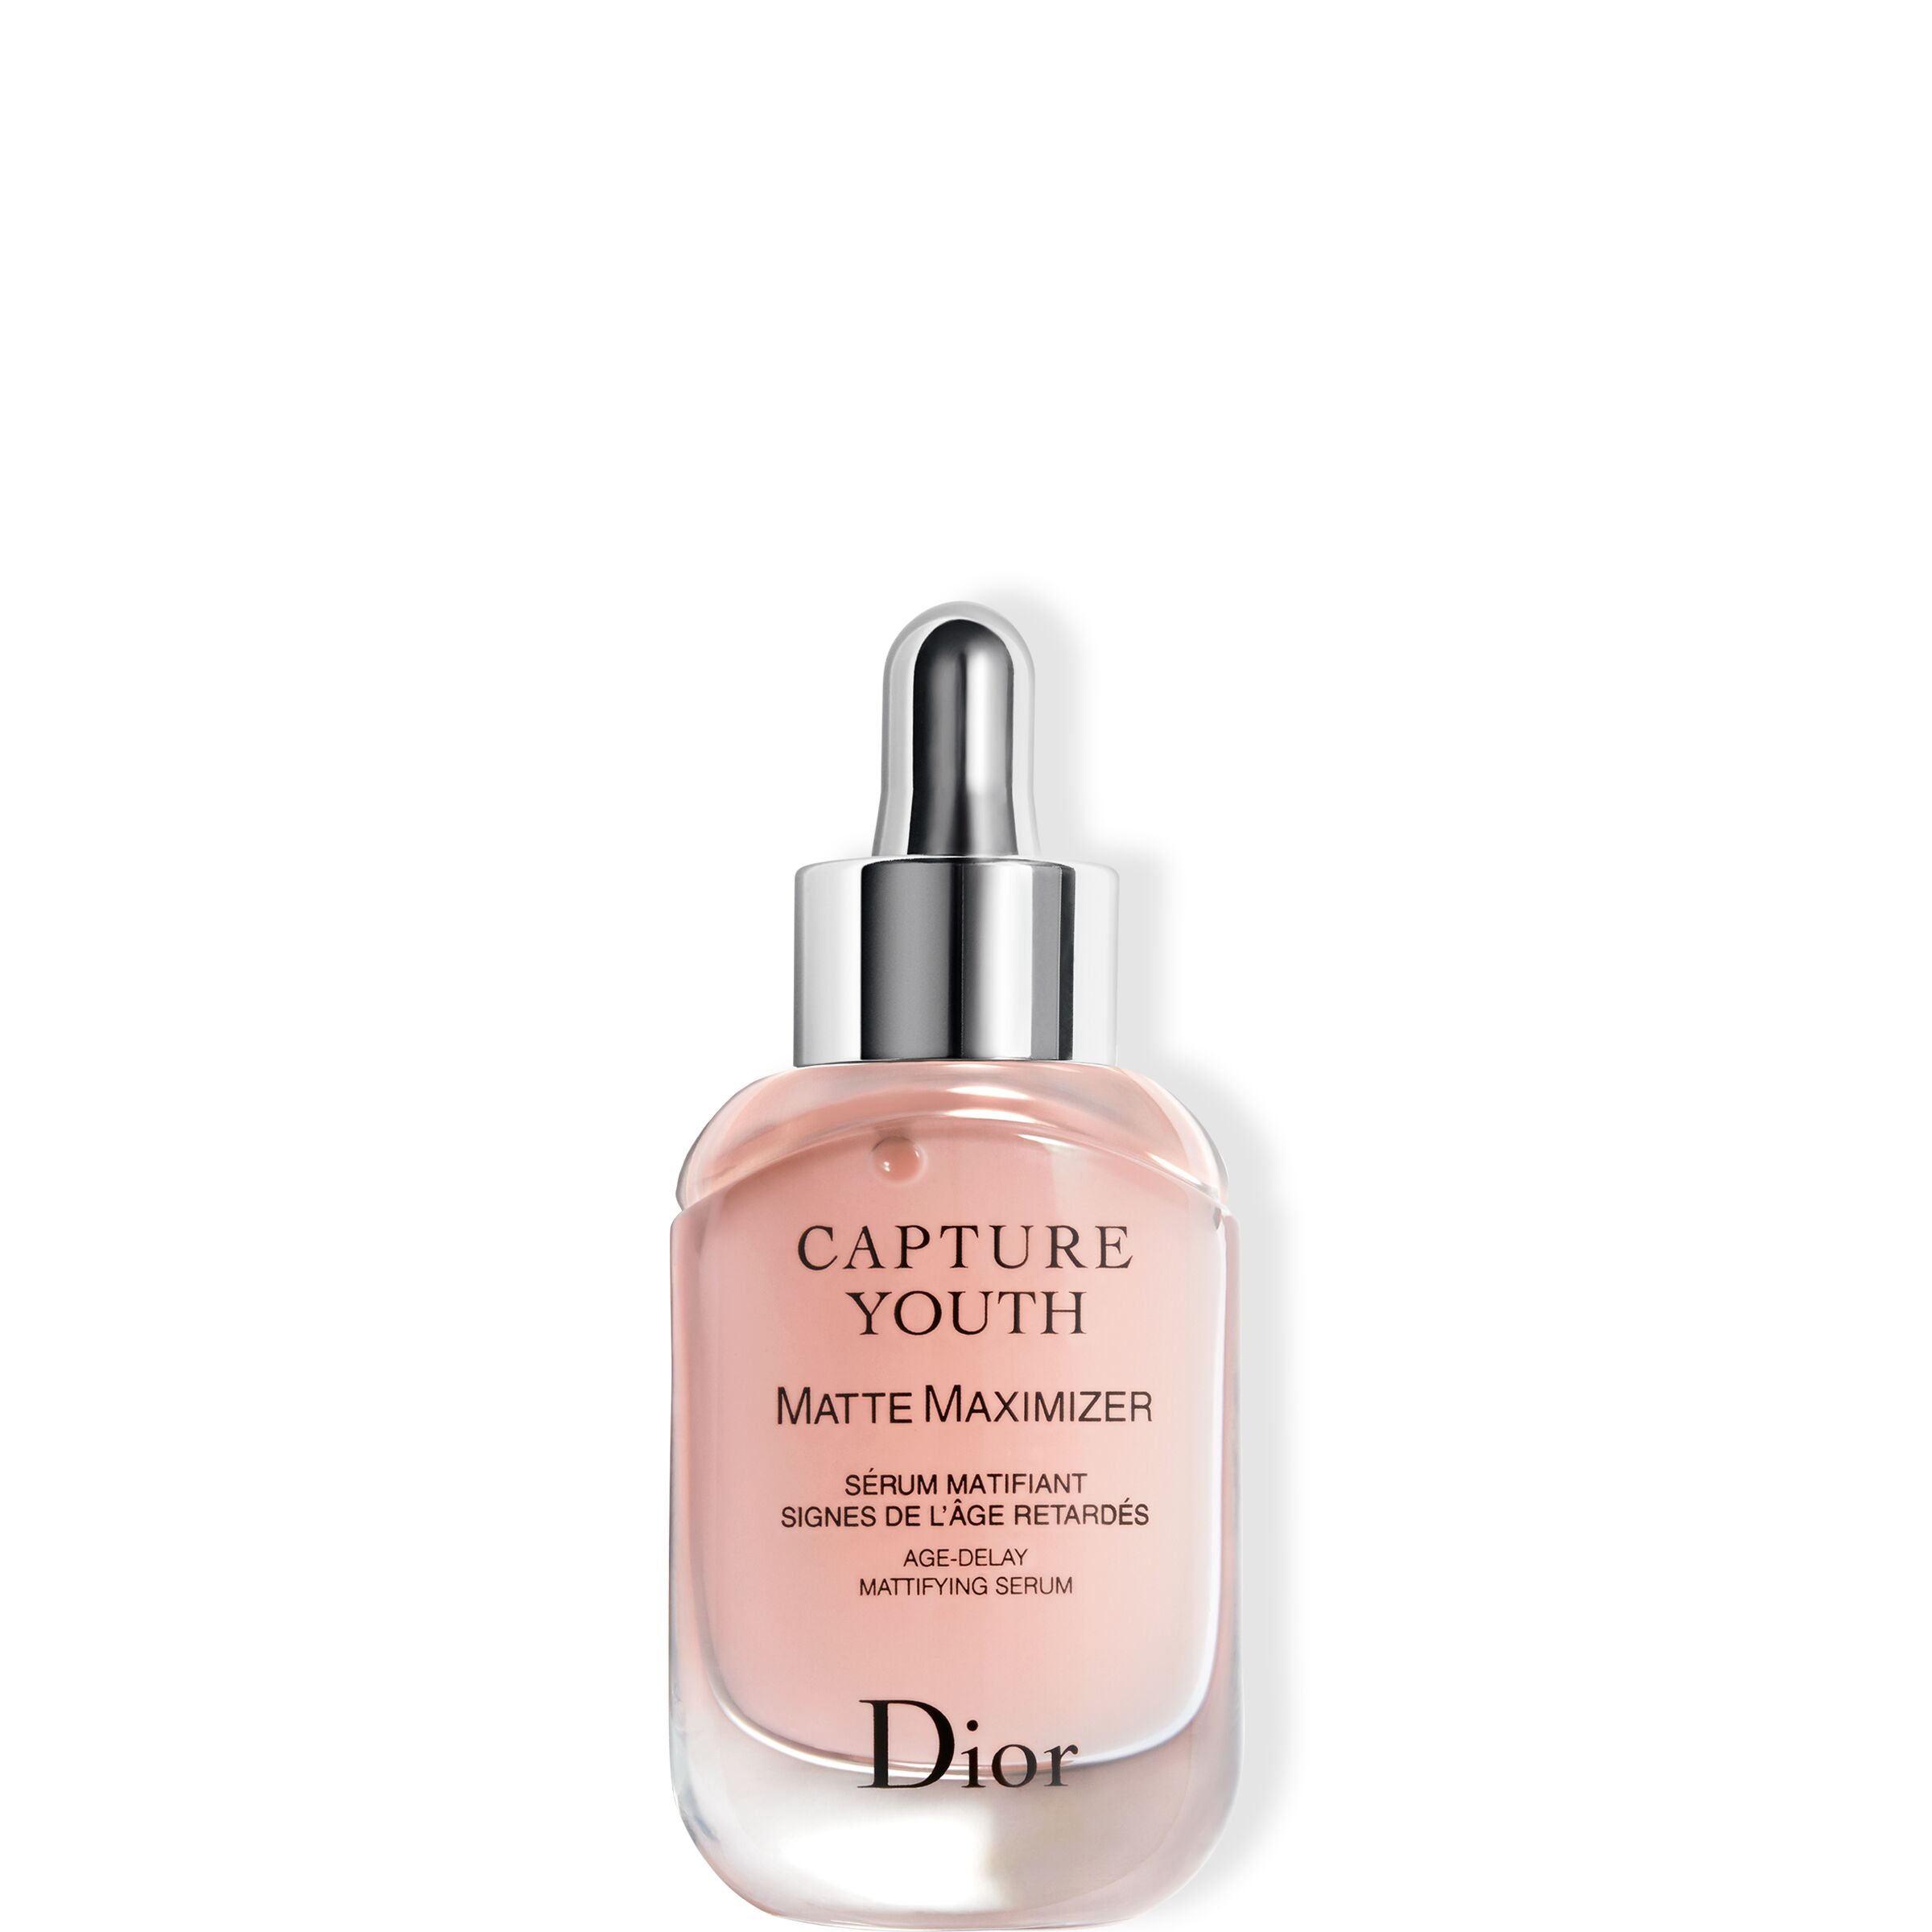 Capture Youth Matte Maximizer Serum 30ml